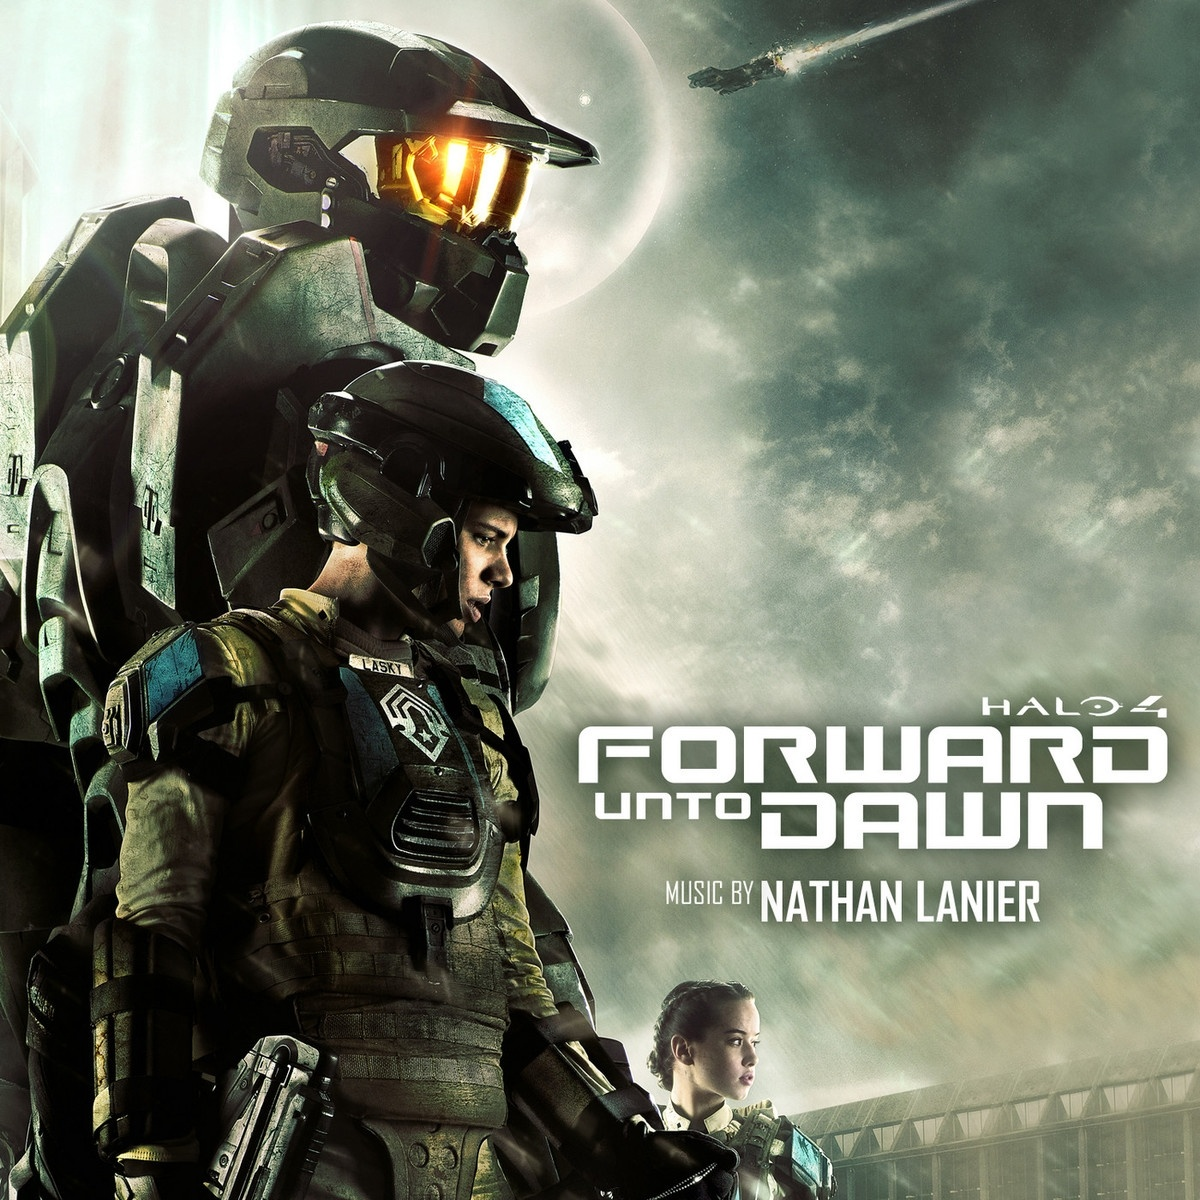 Halo 4: Forward Unto Dawn Original Soundtrack